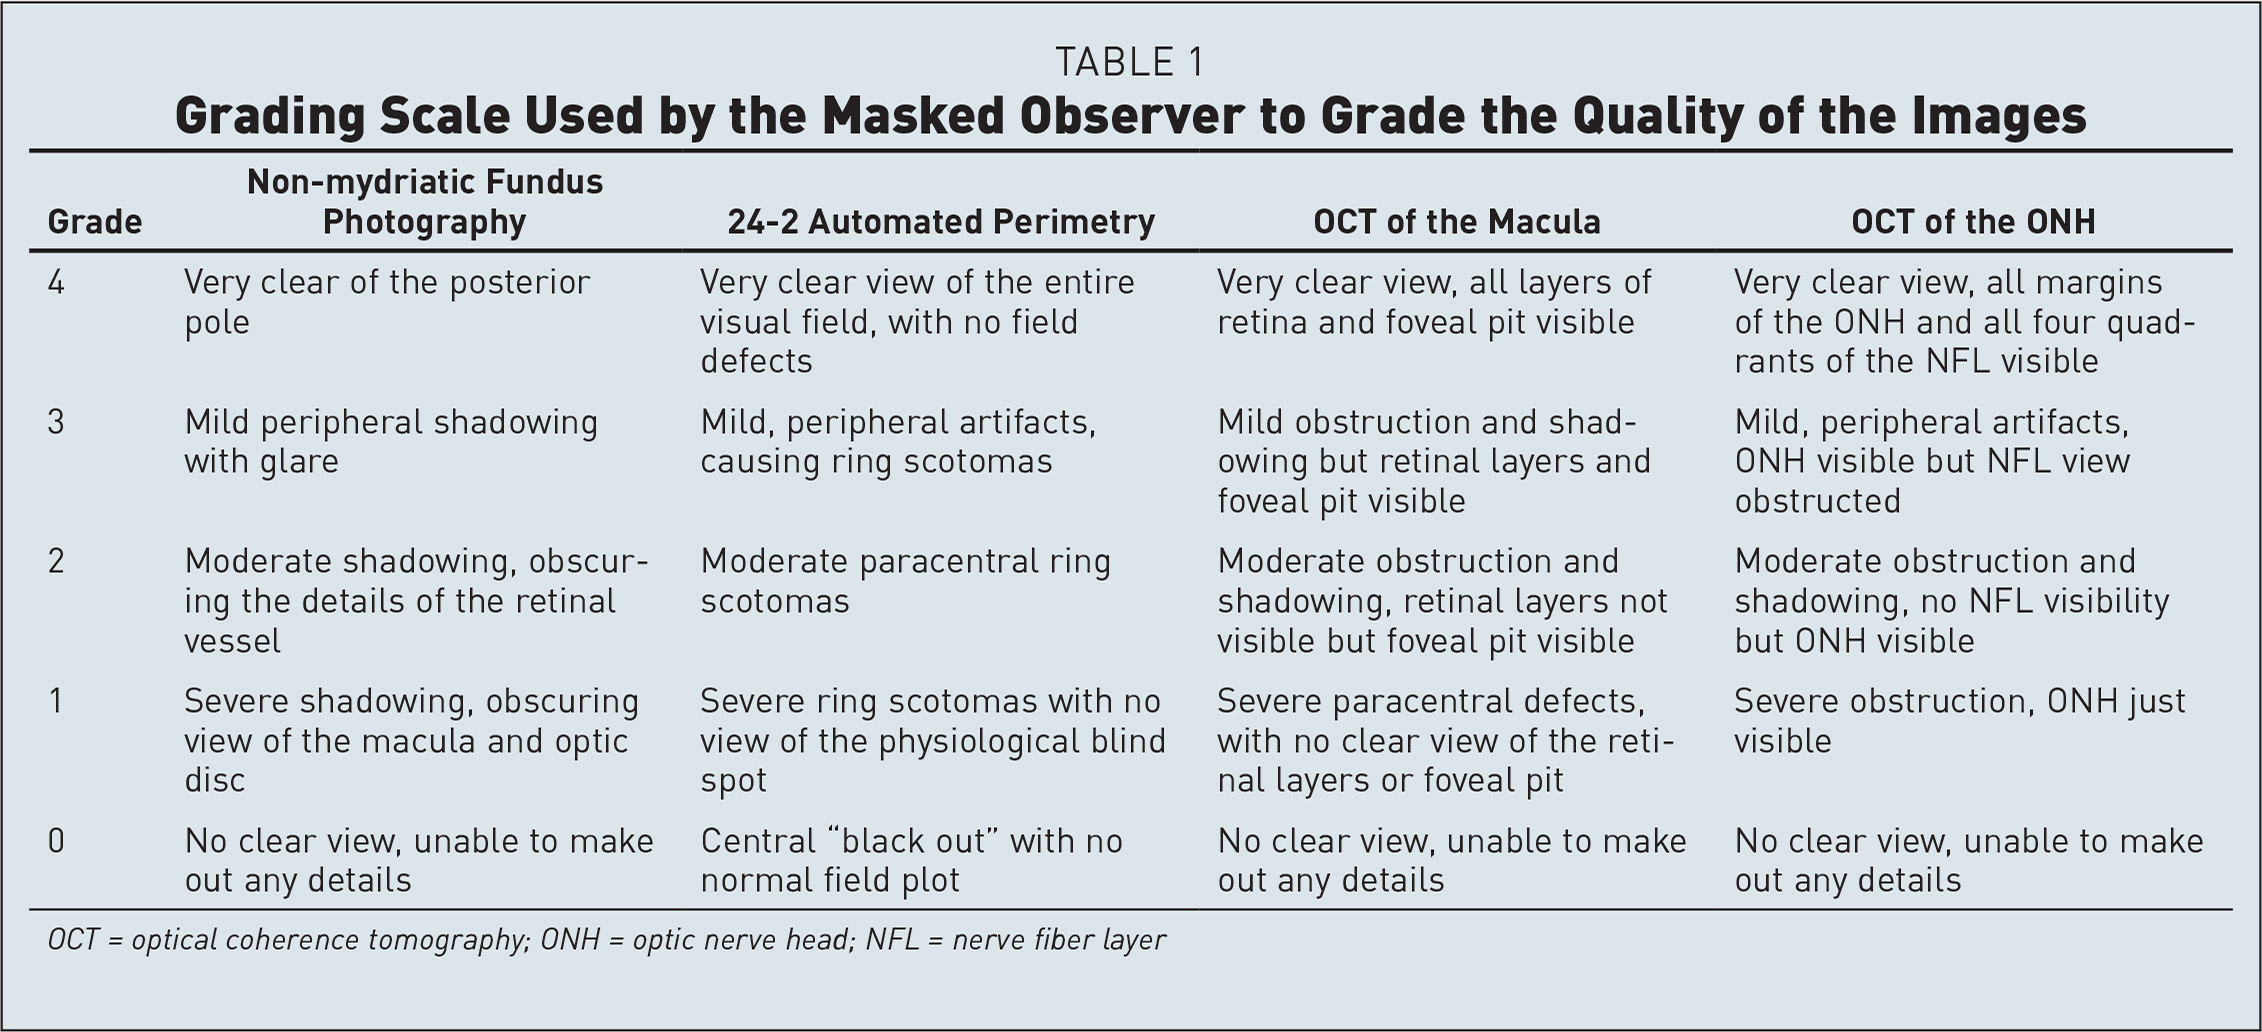 Grading Scale Used by the Masked Observer to Grade the Quality of the Images